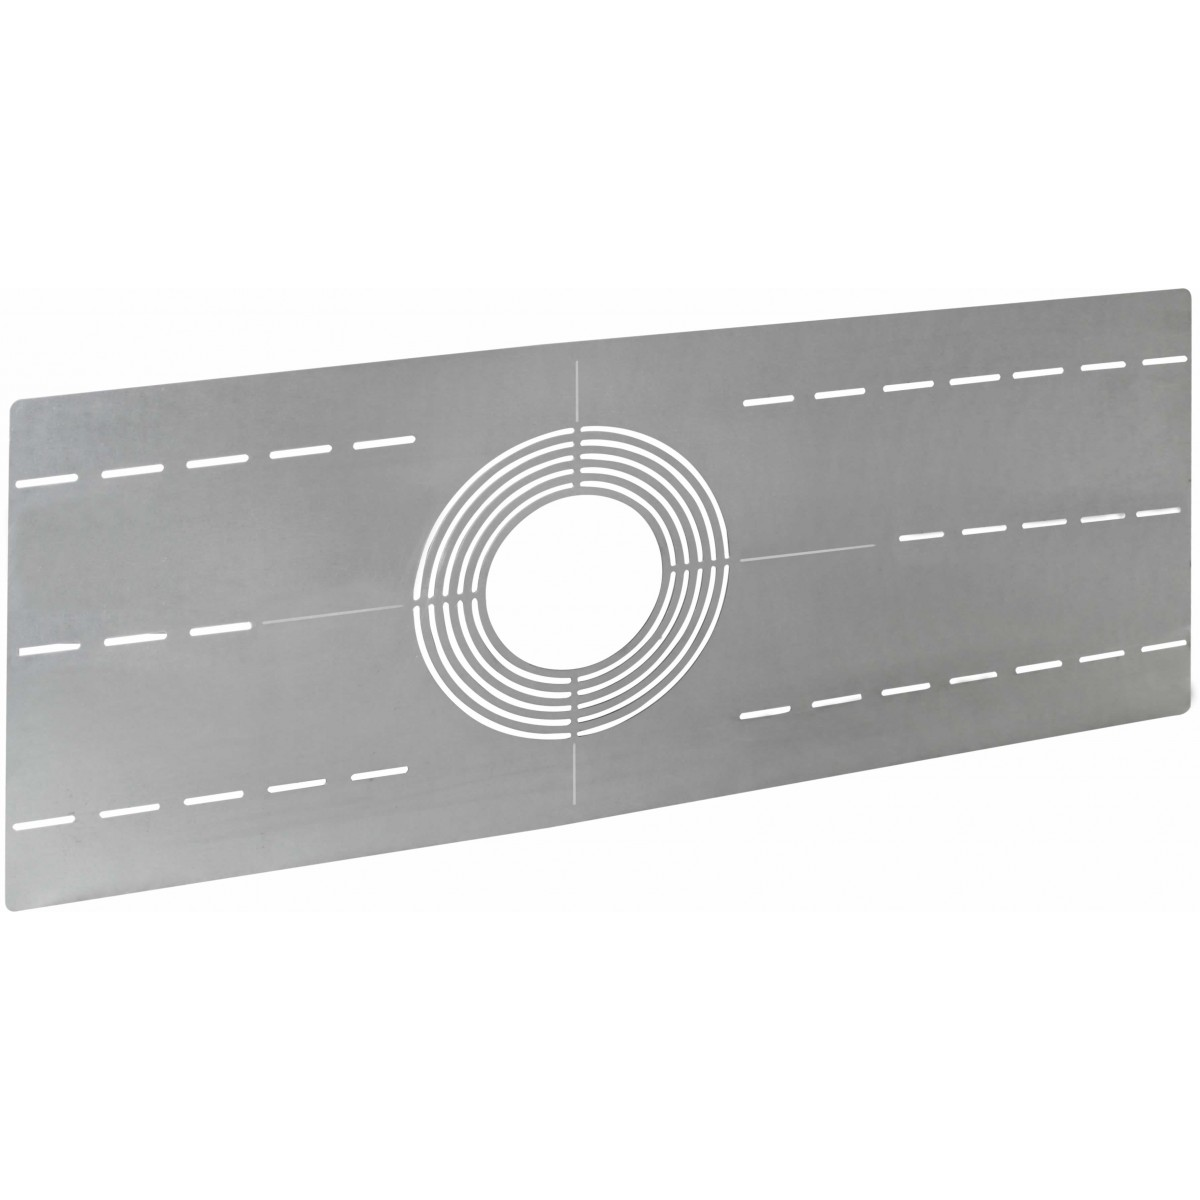 RECESSED LIGHT ADAPTER PLATES - Recessed Light Adapter Plates - Prefab Products - Steel Products